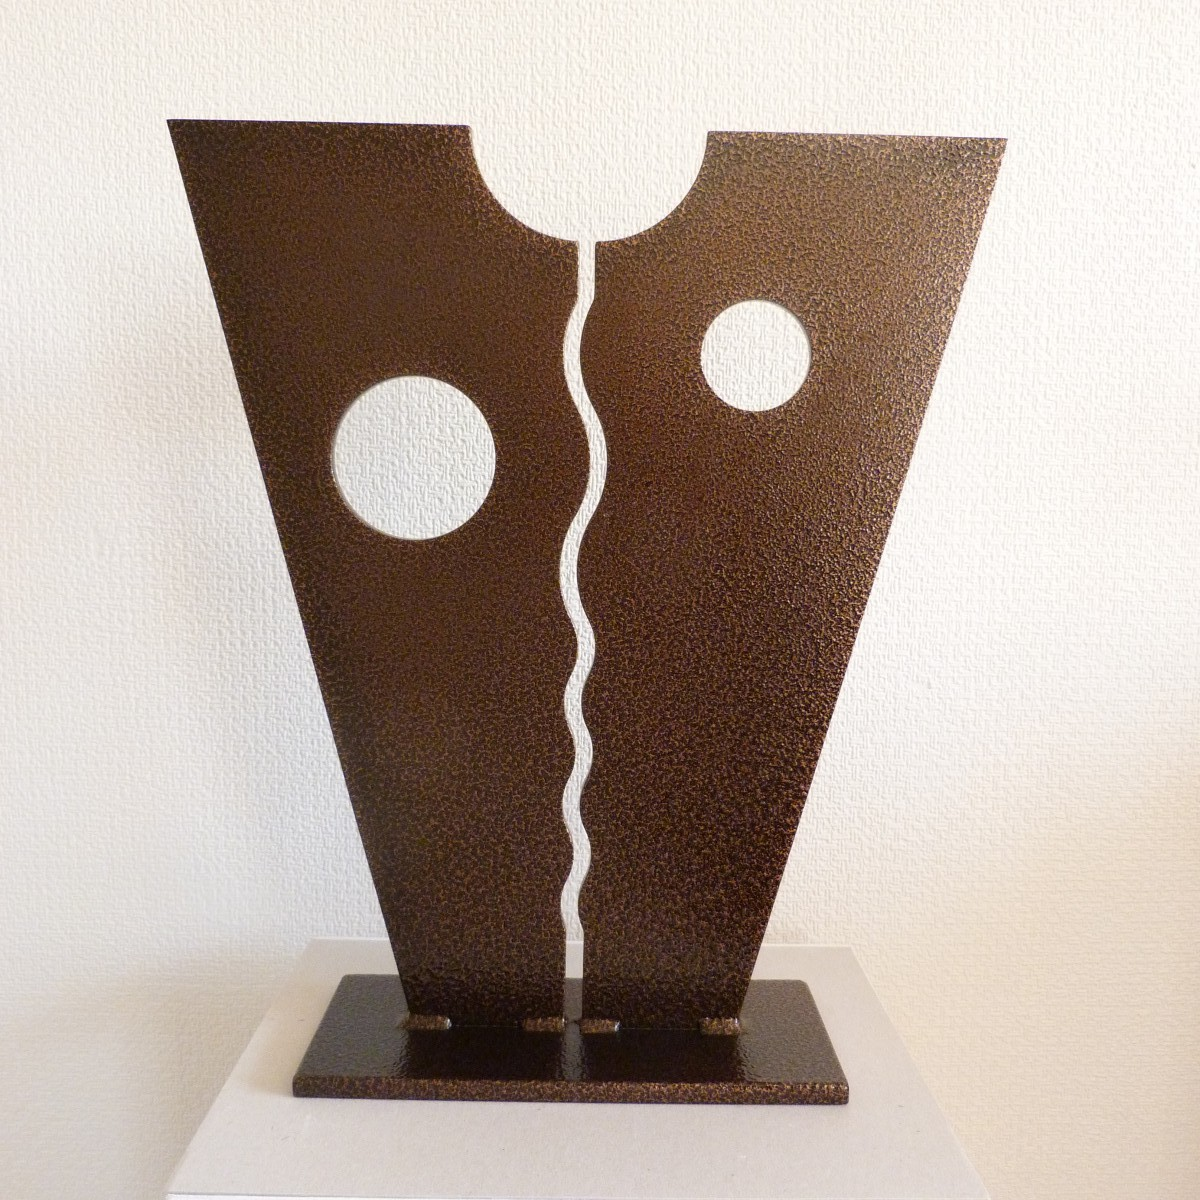 David Sprakes, River and Moons, Standing Relief. Bronze coated steel, 44 x 38cm, £650